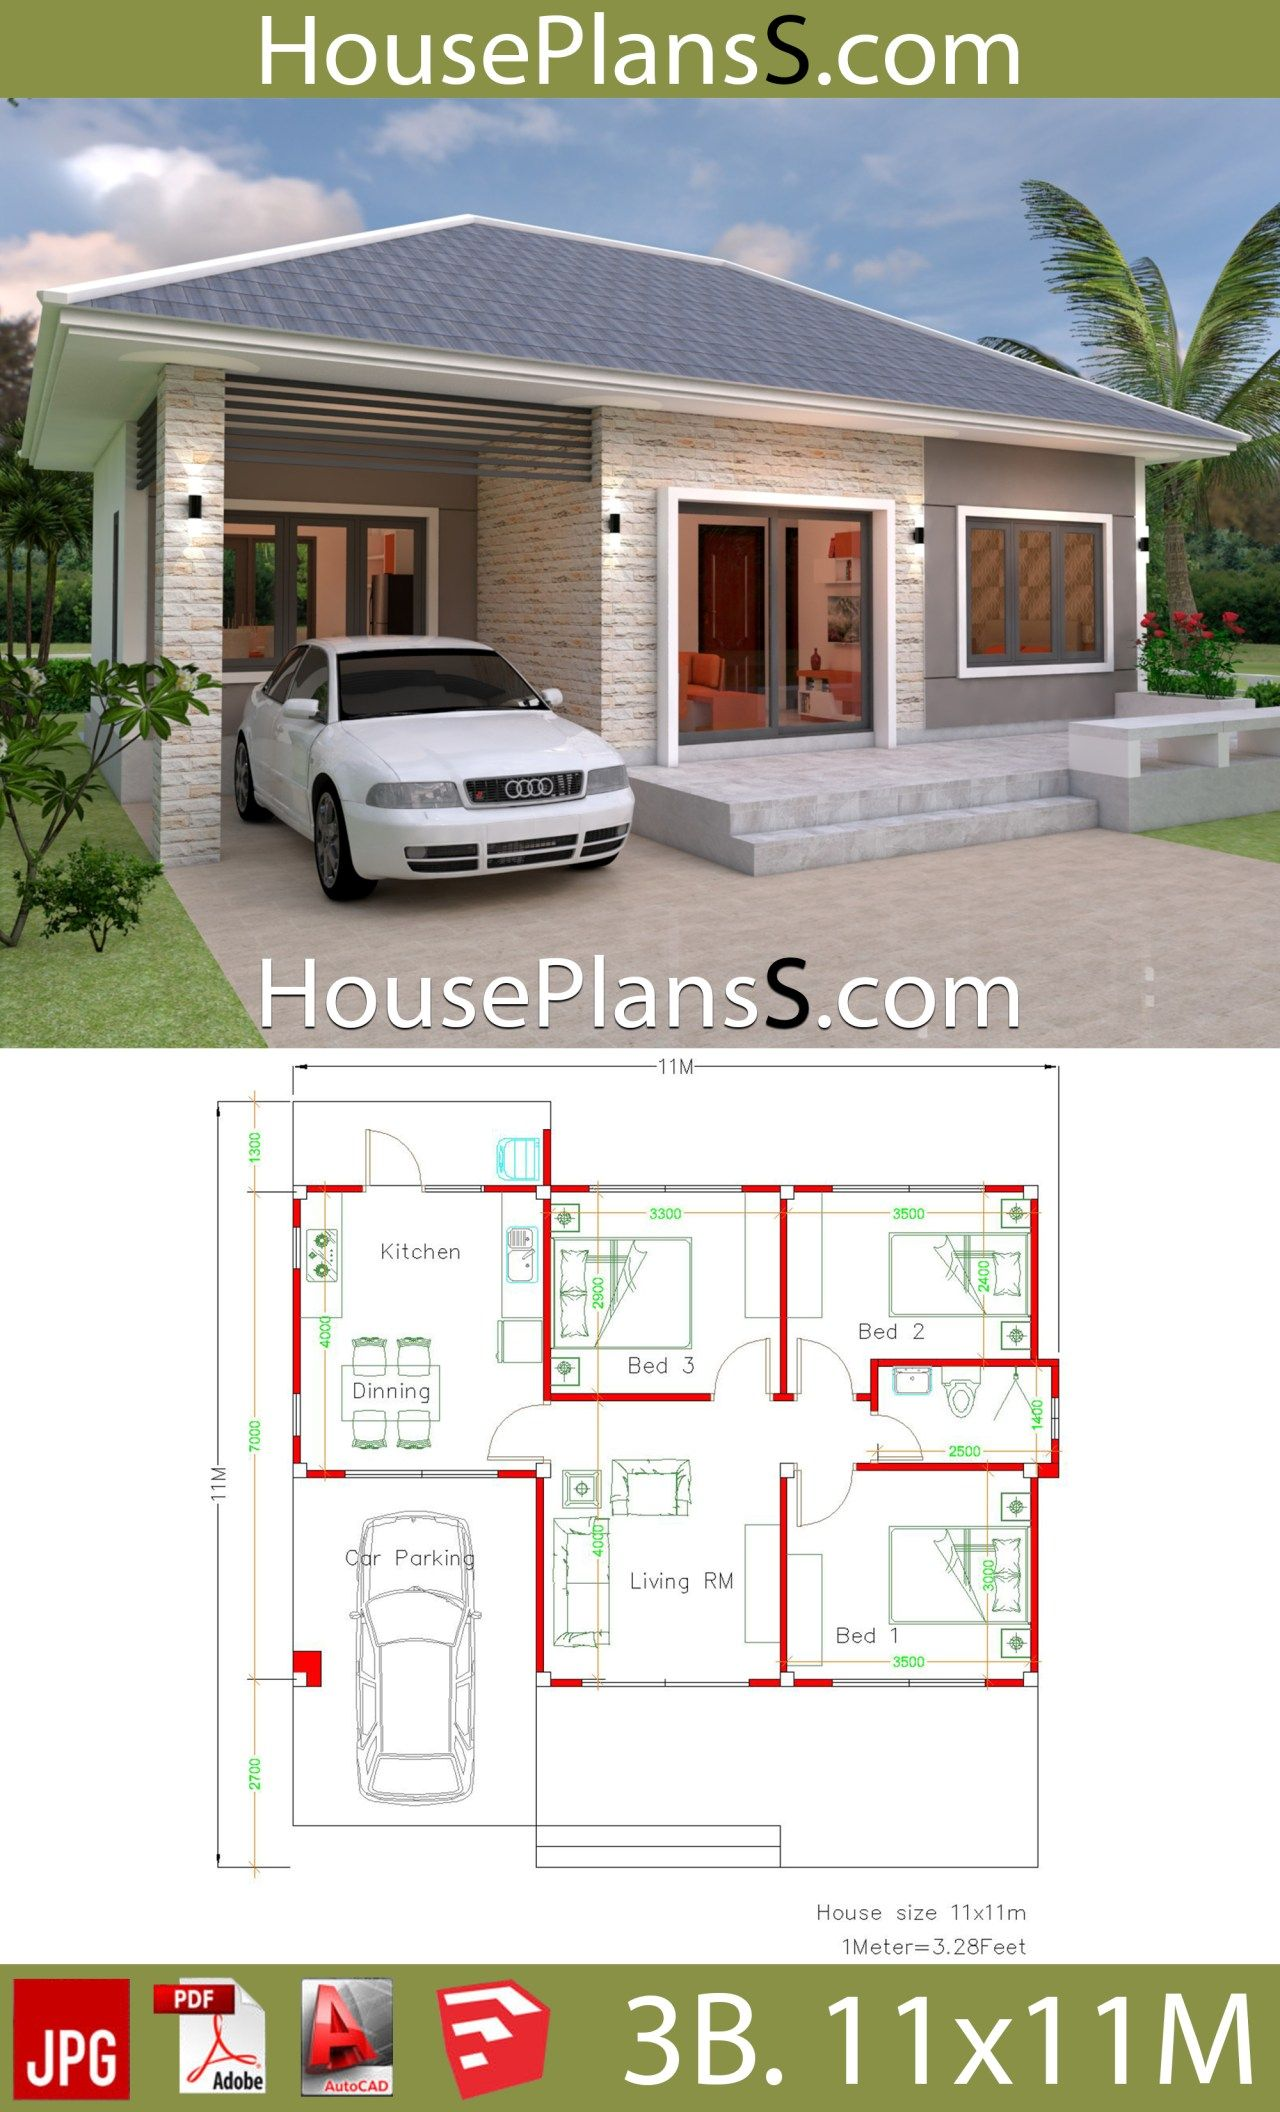 Simple House Design Plans 11x11 With 3 Bedrooms Full Plans House Plans 3d Small House Design Plans Simple House House Layout Plans